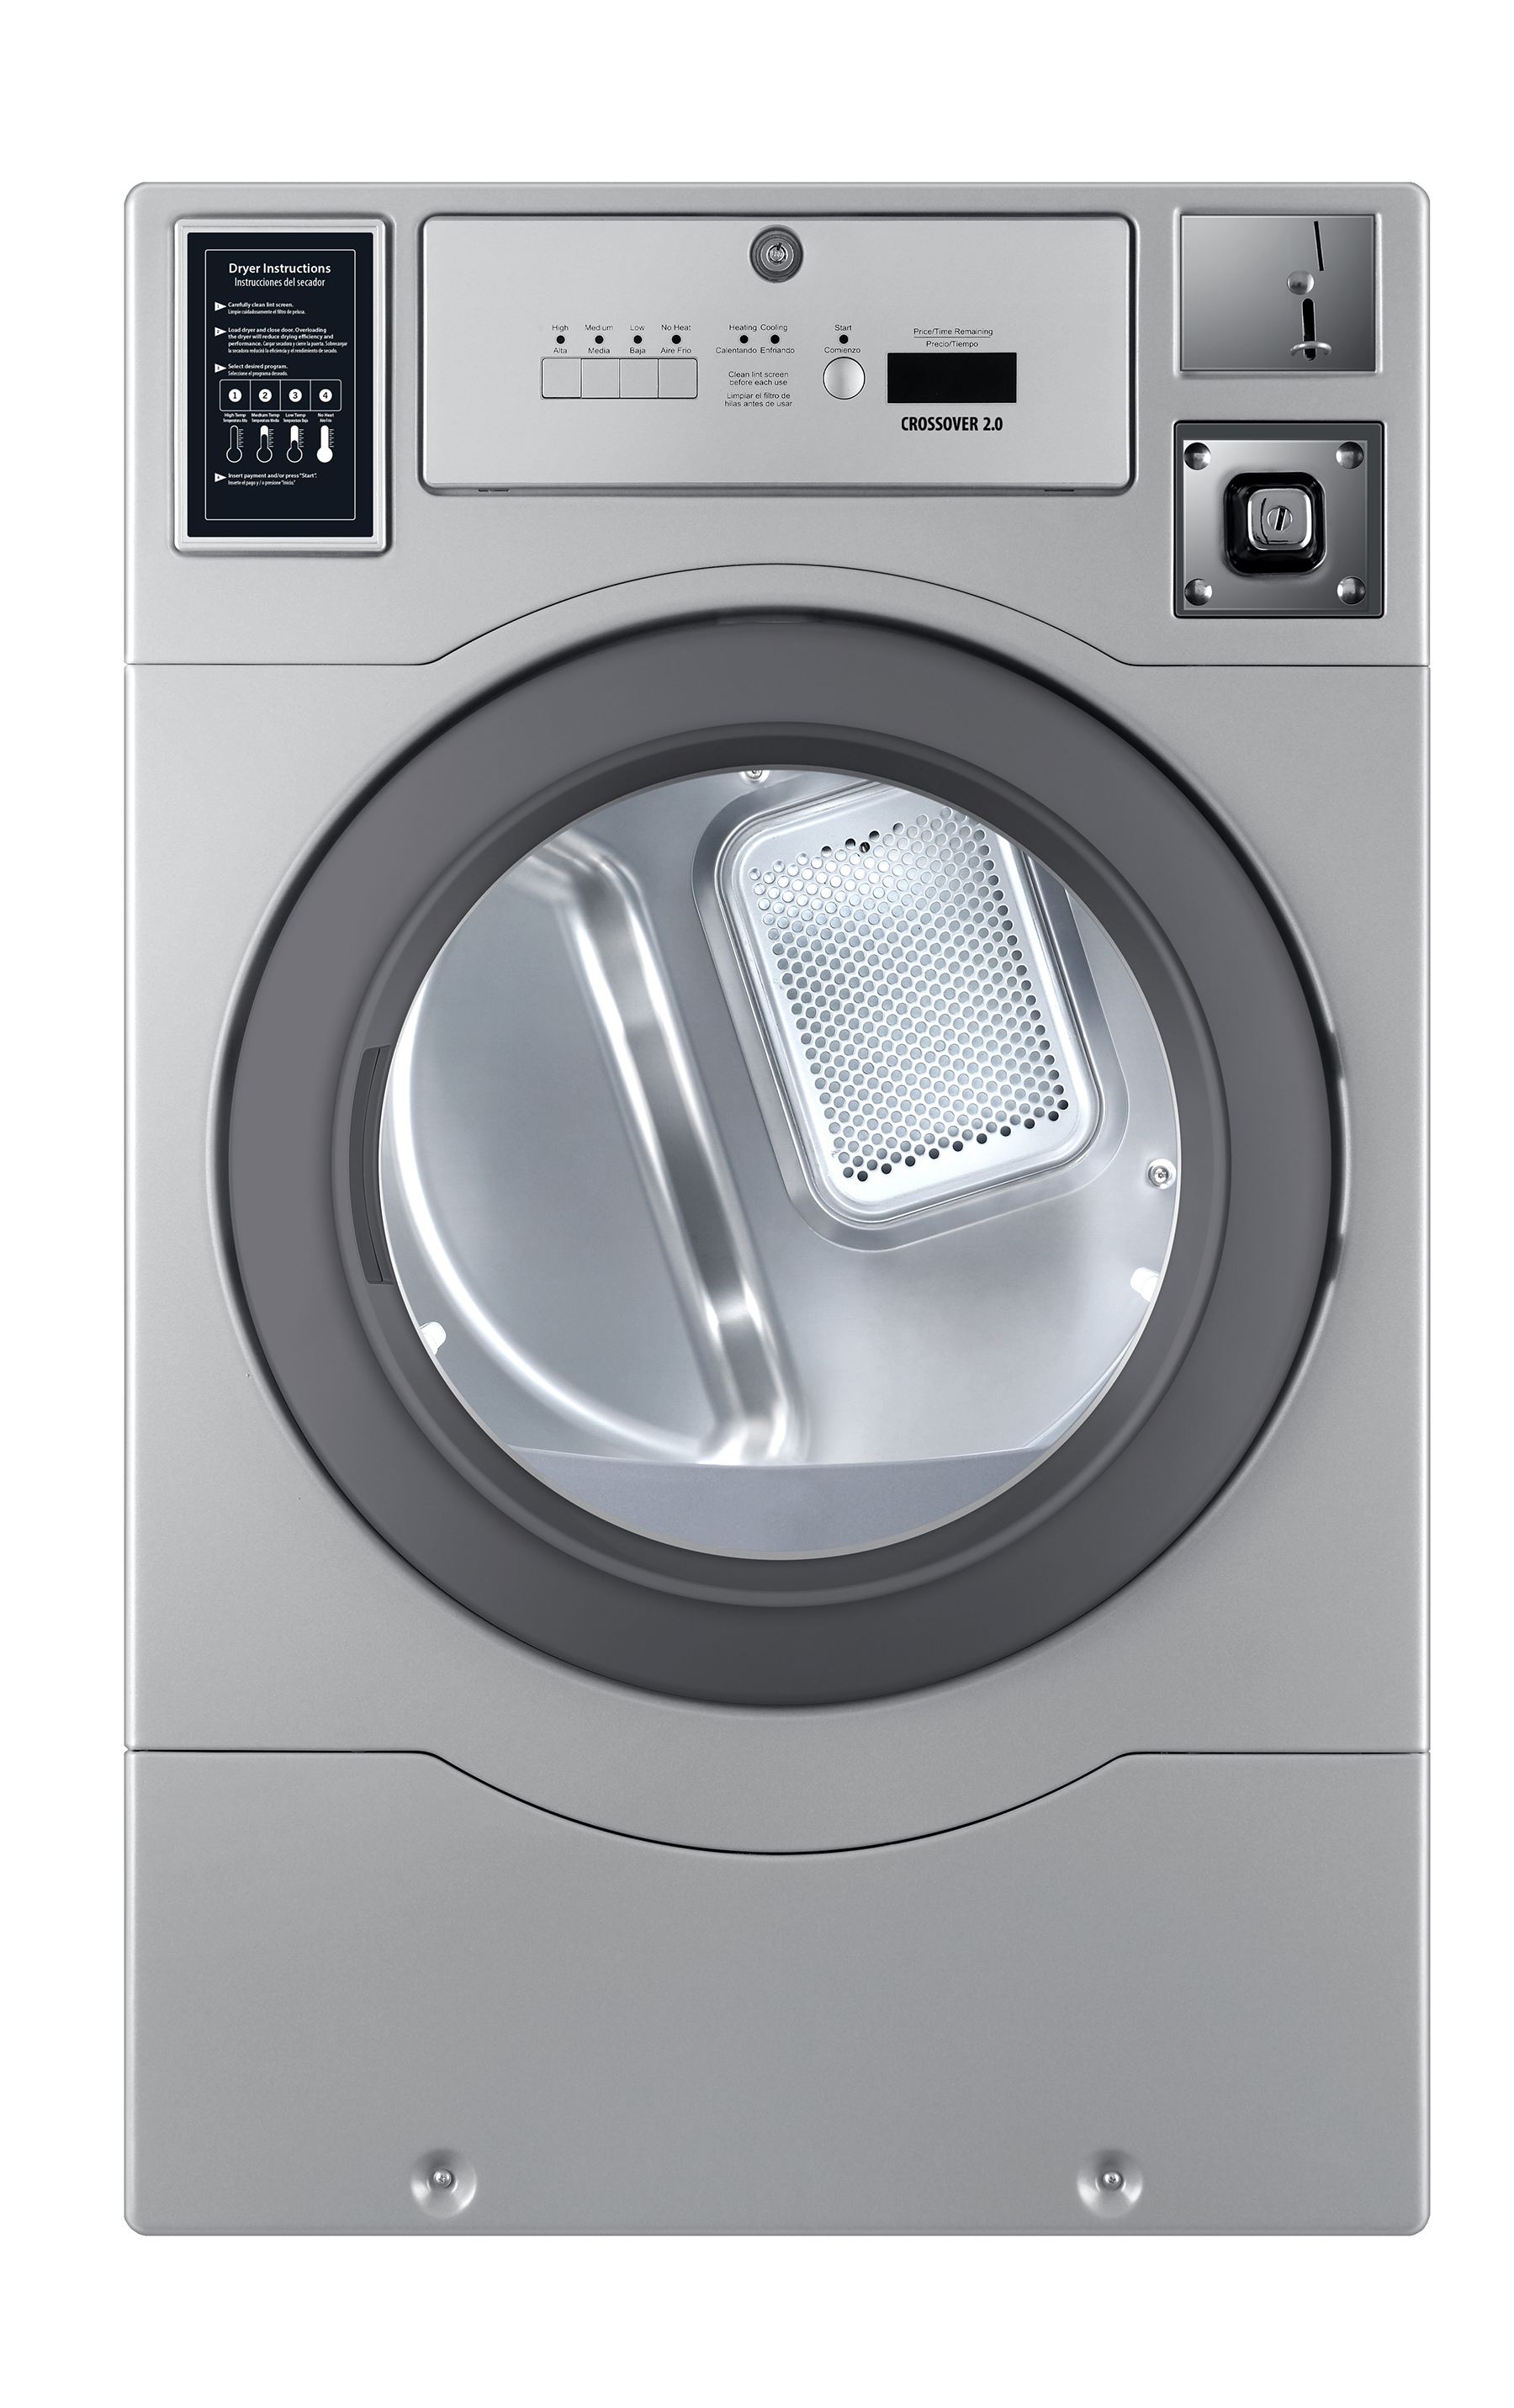 Crossover Laundry Crossover True Commercial Laundry - 7.0 CF Top Control Gas Dryer, Coin Option Included/Card Ready, Silver, 27""